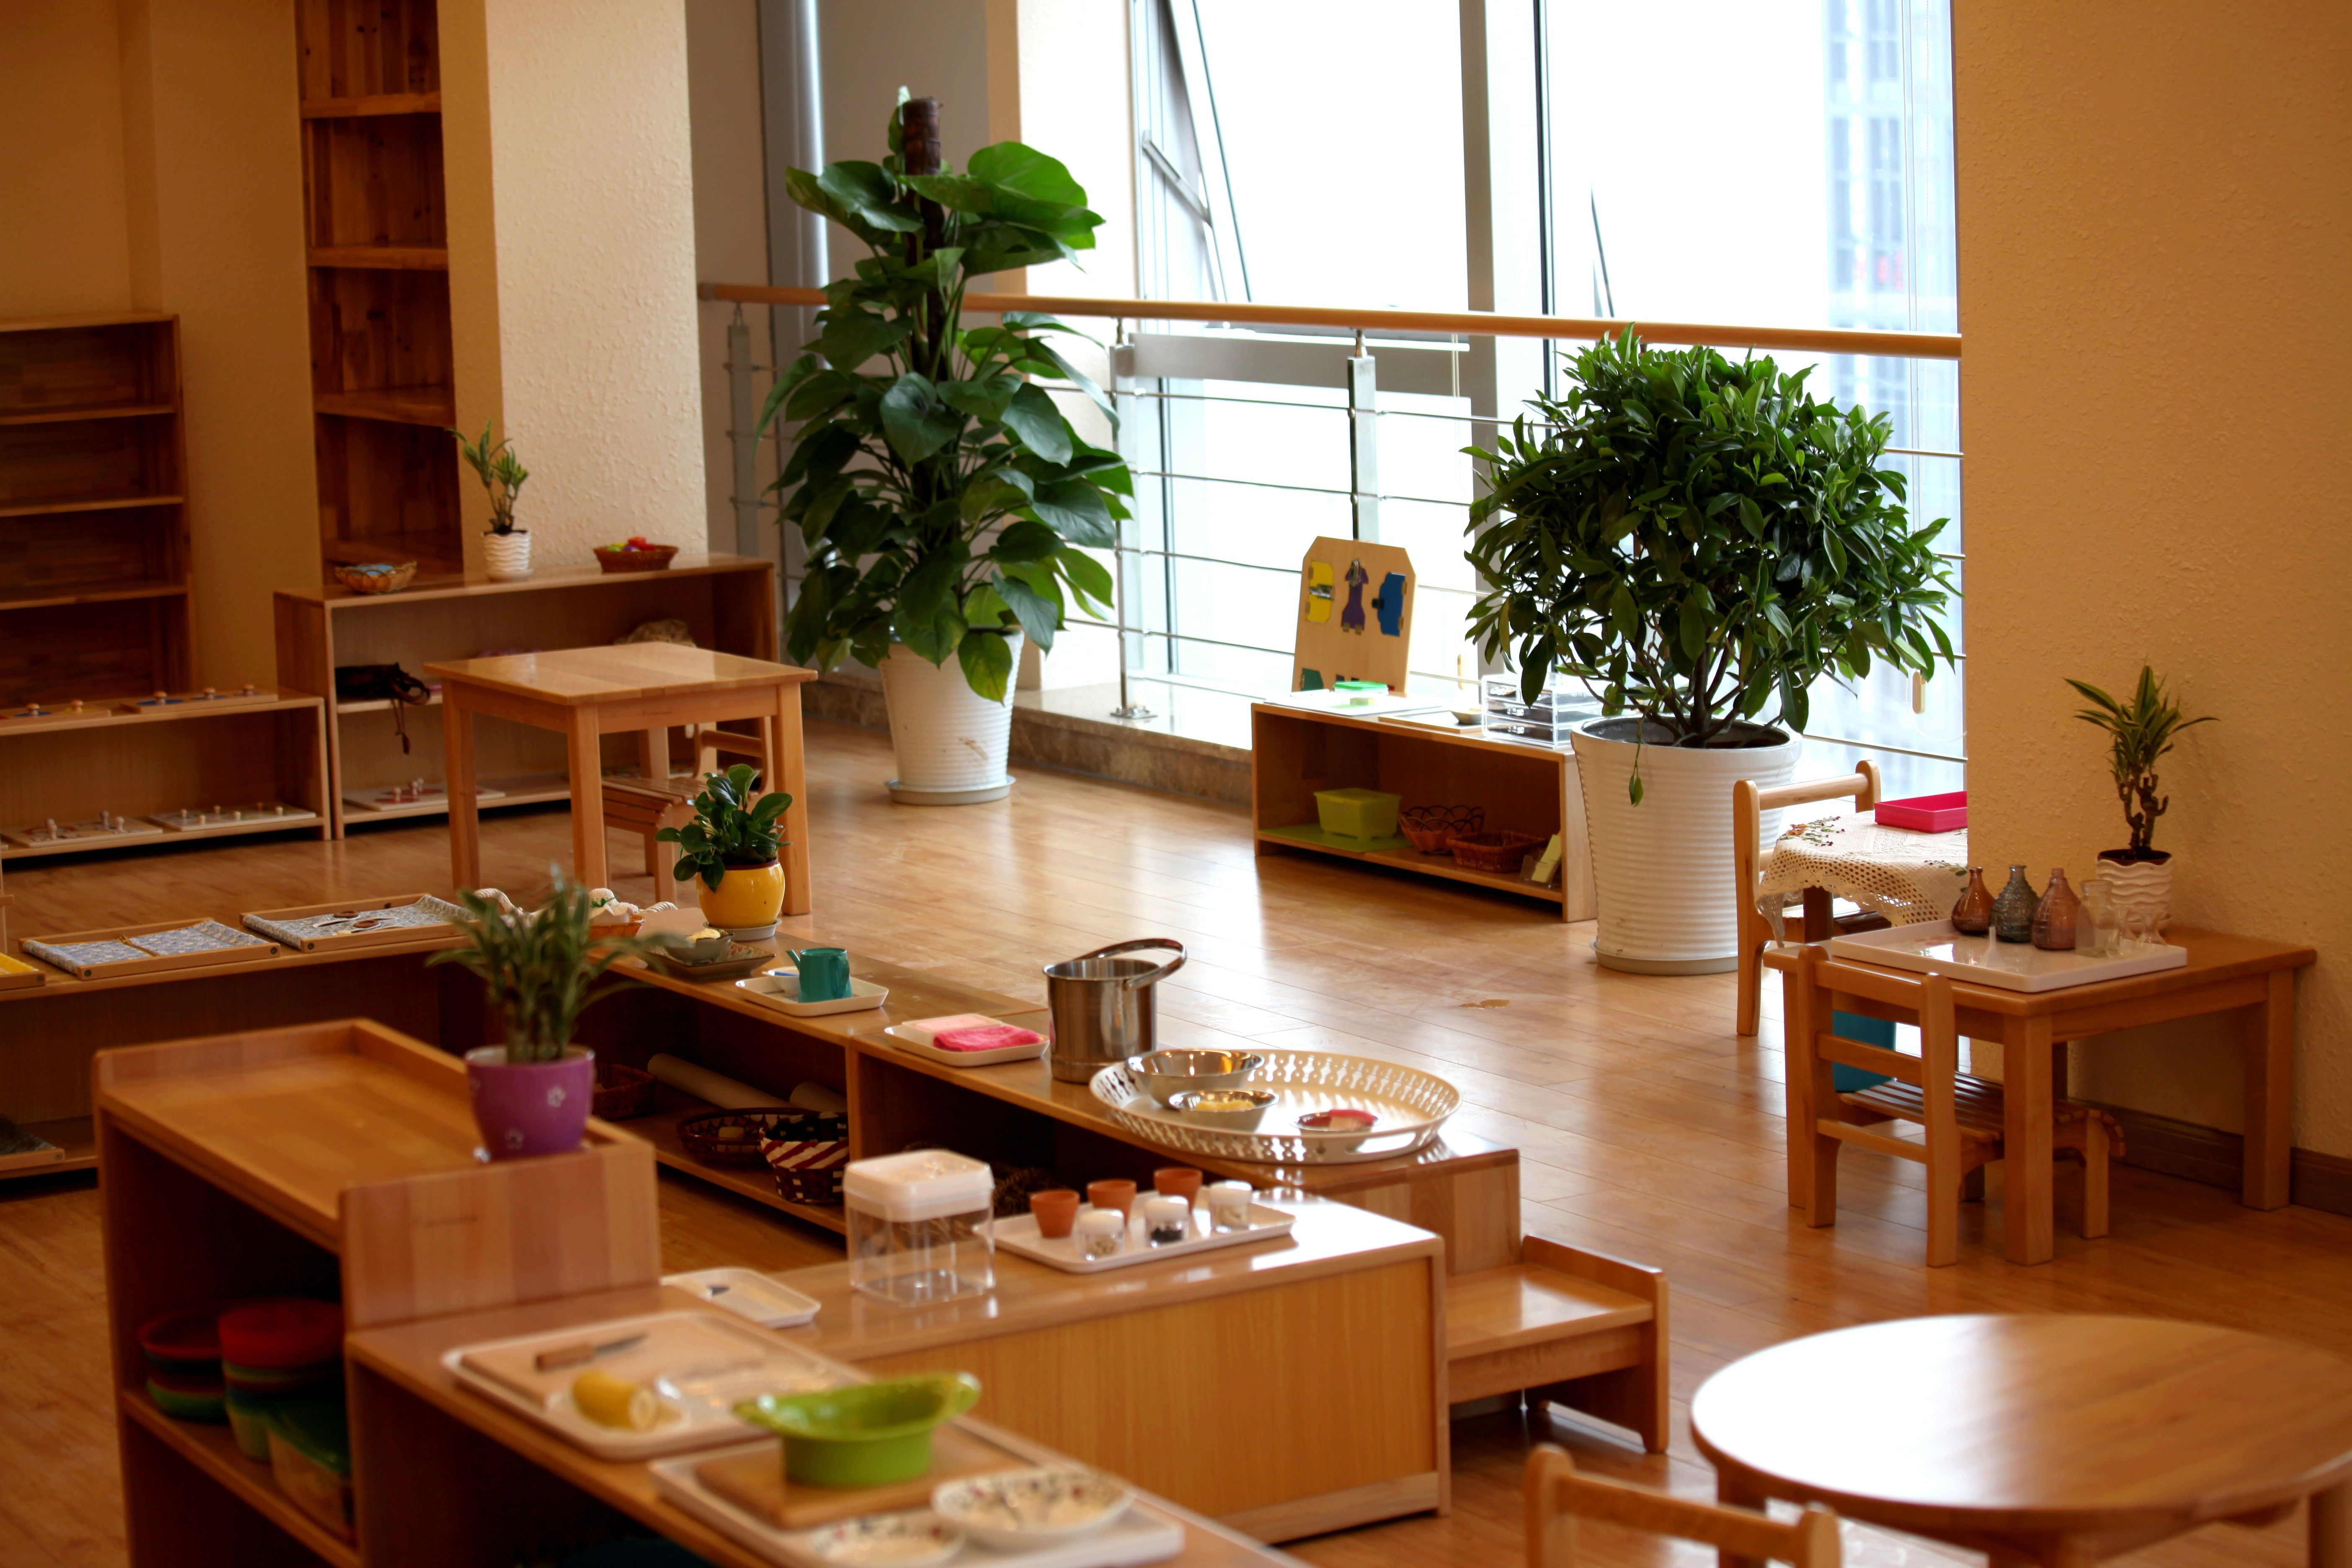 Montessori classroom at Beautiful Grassland Kindergarten in Chongqing, China. http://sproutsmc.wix.com/sprouts